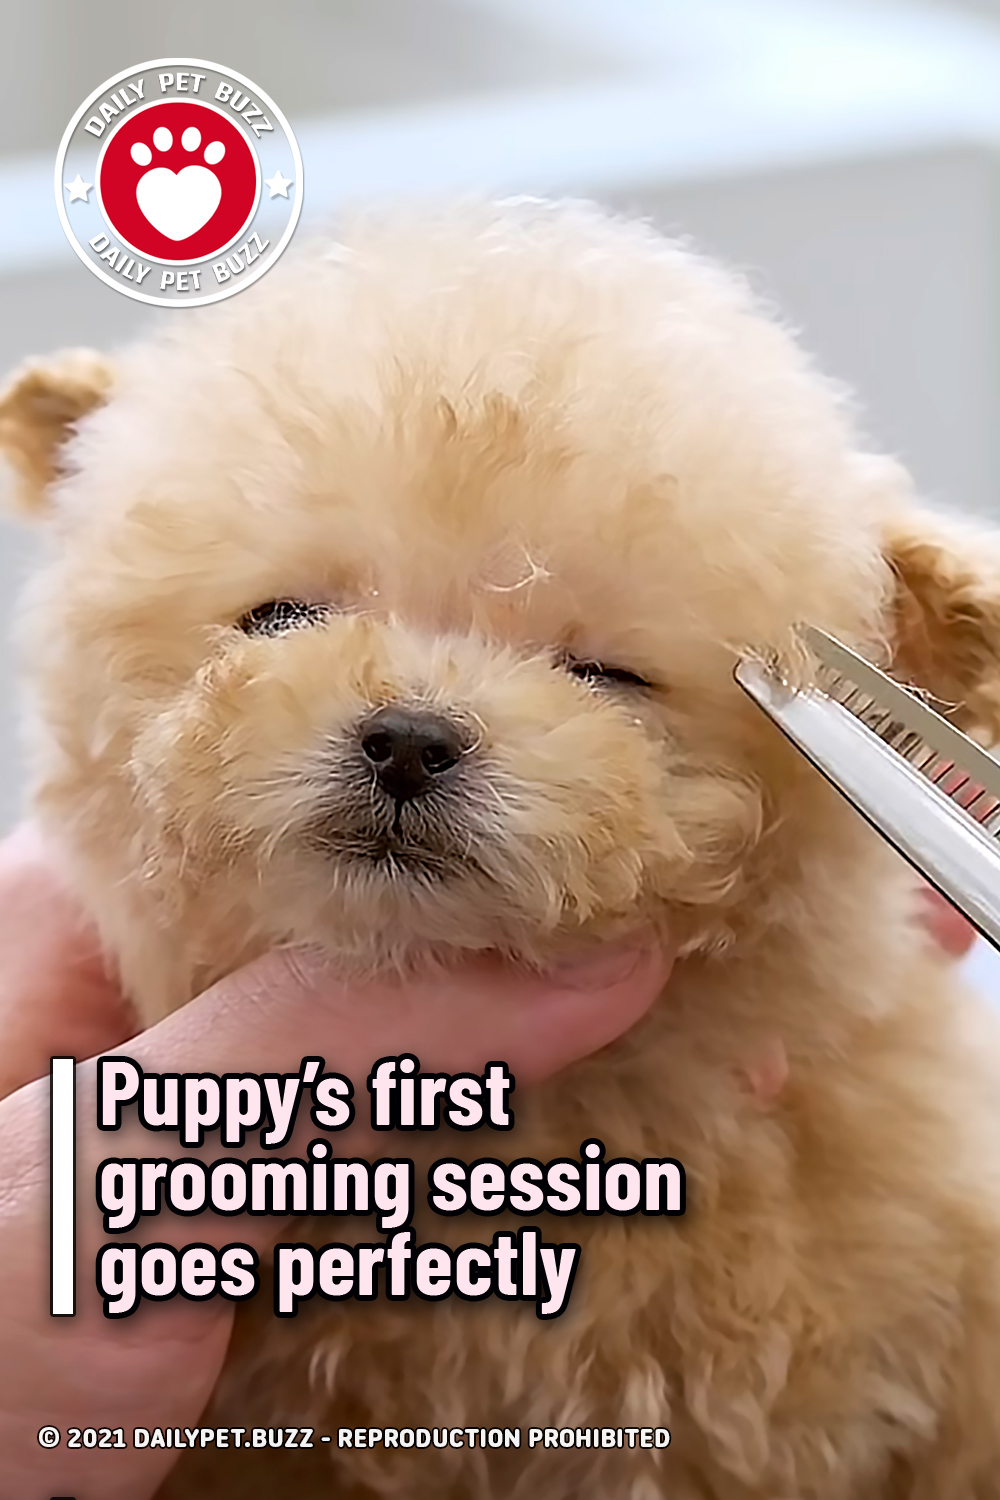 Puppy's first grooming session goes perfectly